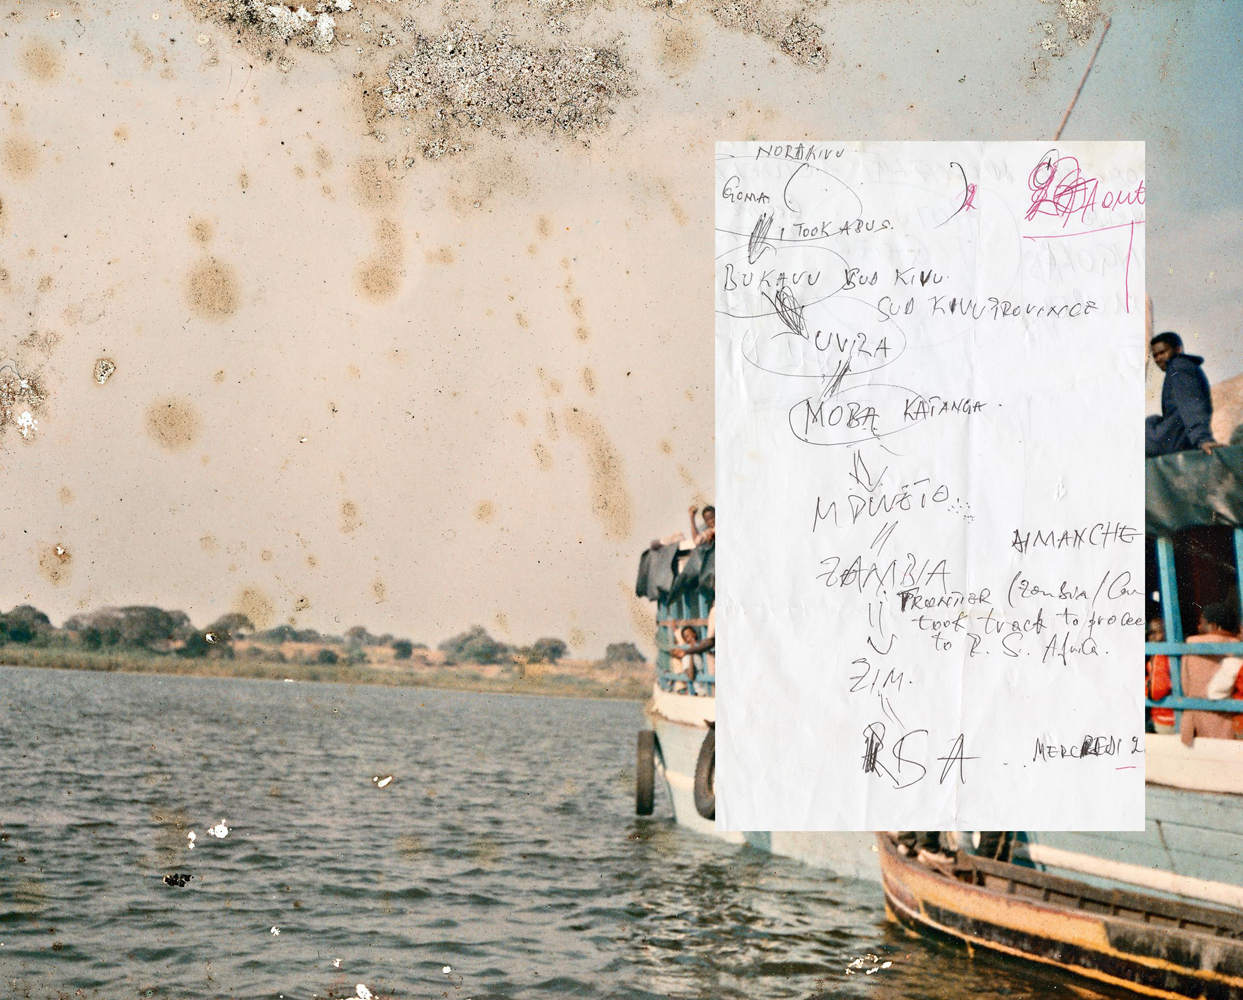 A spread from the Ponte City book that includes a hand-written note with a map showing a Congolese refugee's journey to South Africa. This is overlaid on a photograph found in the same abandoned apartment.